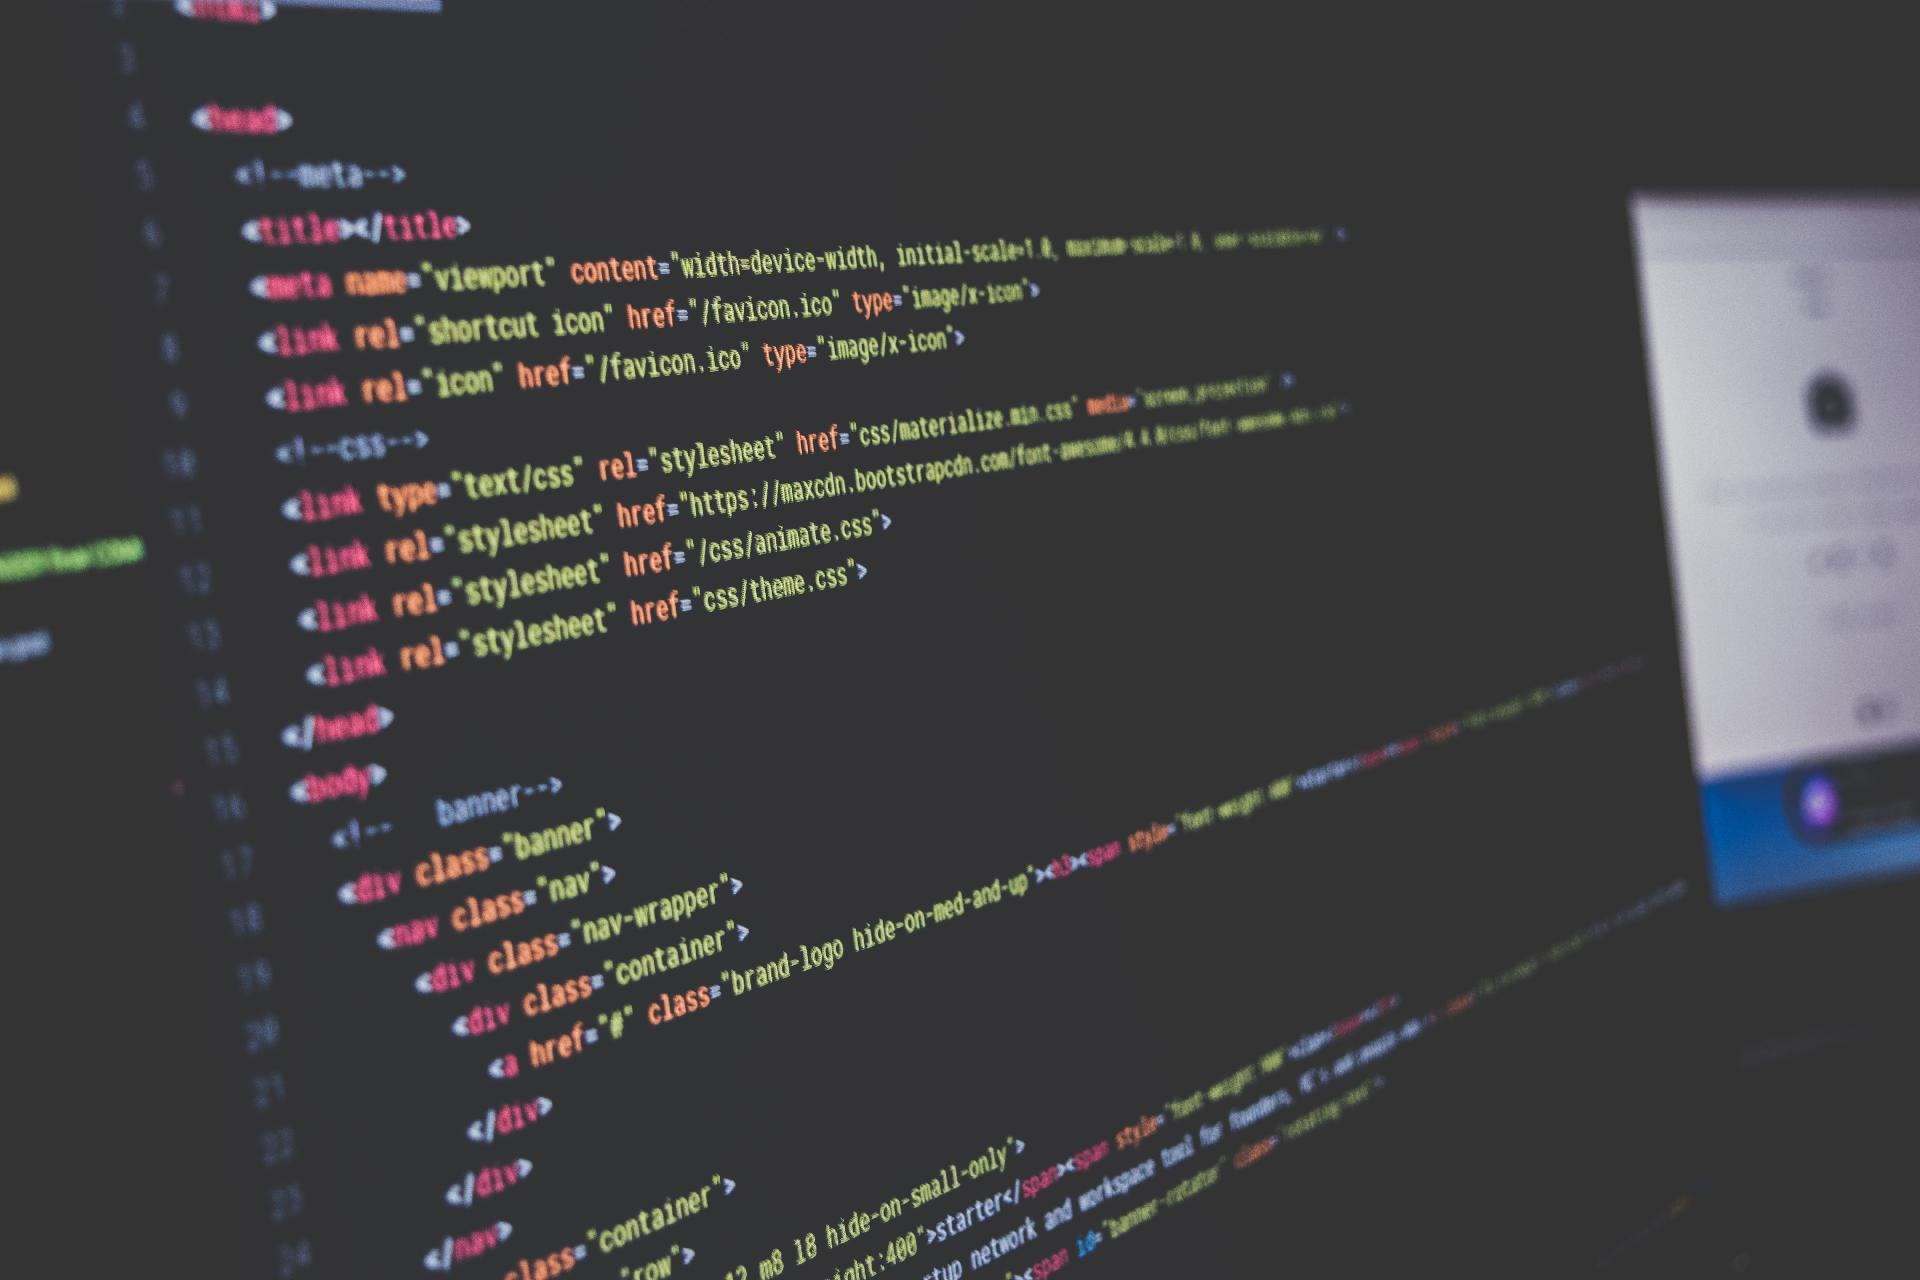 This is a picture a PC screen with coding displayed for an article called Market Intelligence Professional Vivek Bhalla of MongoDB Answers Our Questions by Octopus is a Competitive Intelligence Competitor Analysis focused on creating certainty